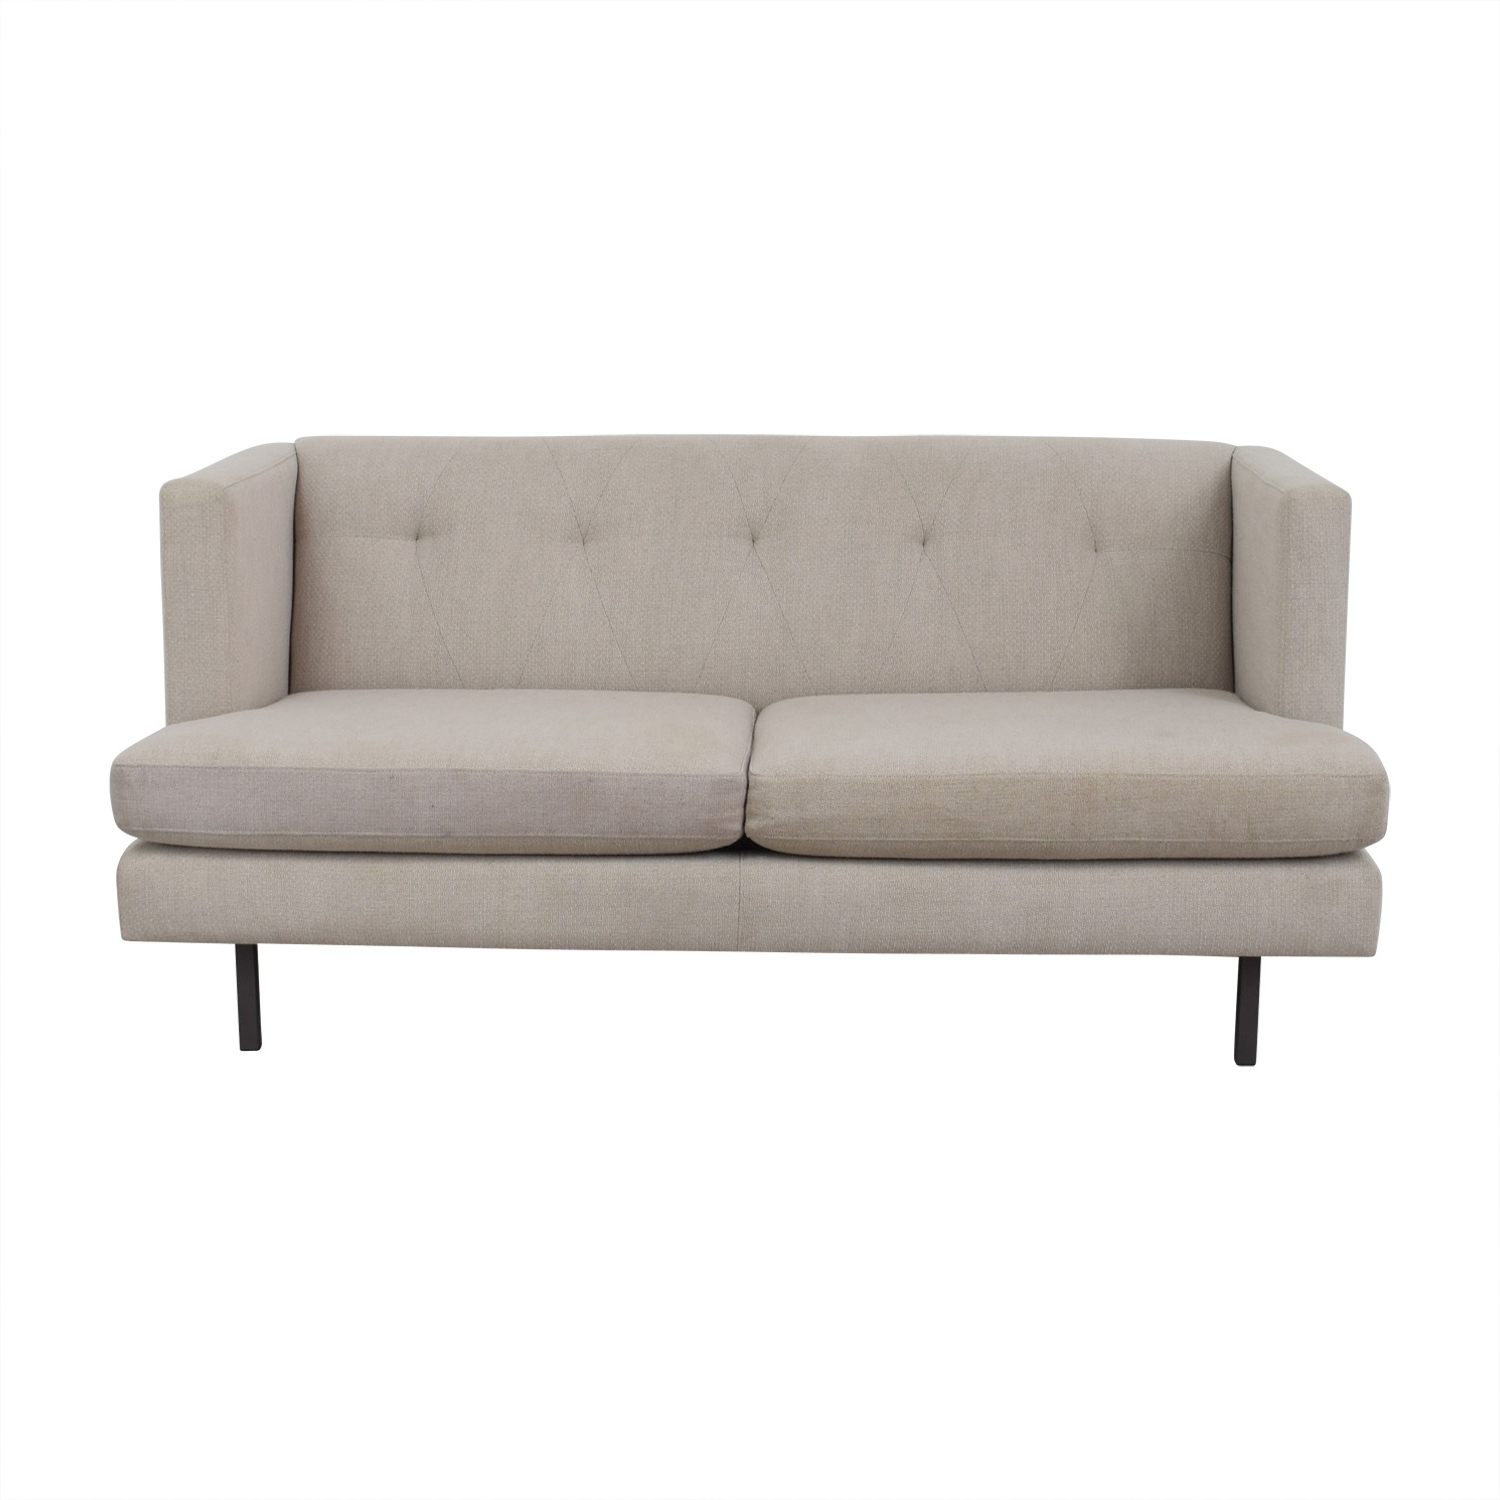 [%75% Off – Cb2 Cb2 Avec Apartment Sofa / Sofas Within Most Popular Apartment Sofas|Apartment Sofas Pertaining To Most Recent 75% Off – Cb2 Cb2 Avec Apartment Sofa / Sofas|Well Liked Apartment Sofas Pertaining To 75% Off – Cb2 Cb2 Avec Apartment Sofa / Sofas|Most Recently Released 75% Off – Cb2 Cb2 Avec Apartment Sofa / Sofas In Apartment Sofas%] (View 1 of 20)